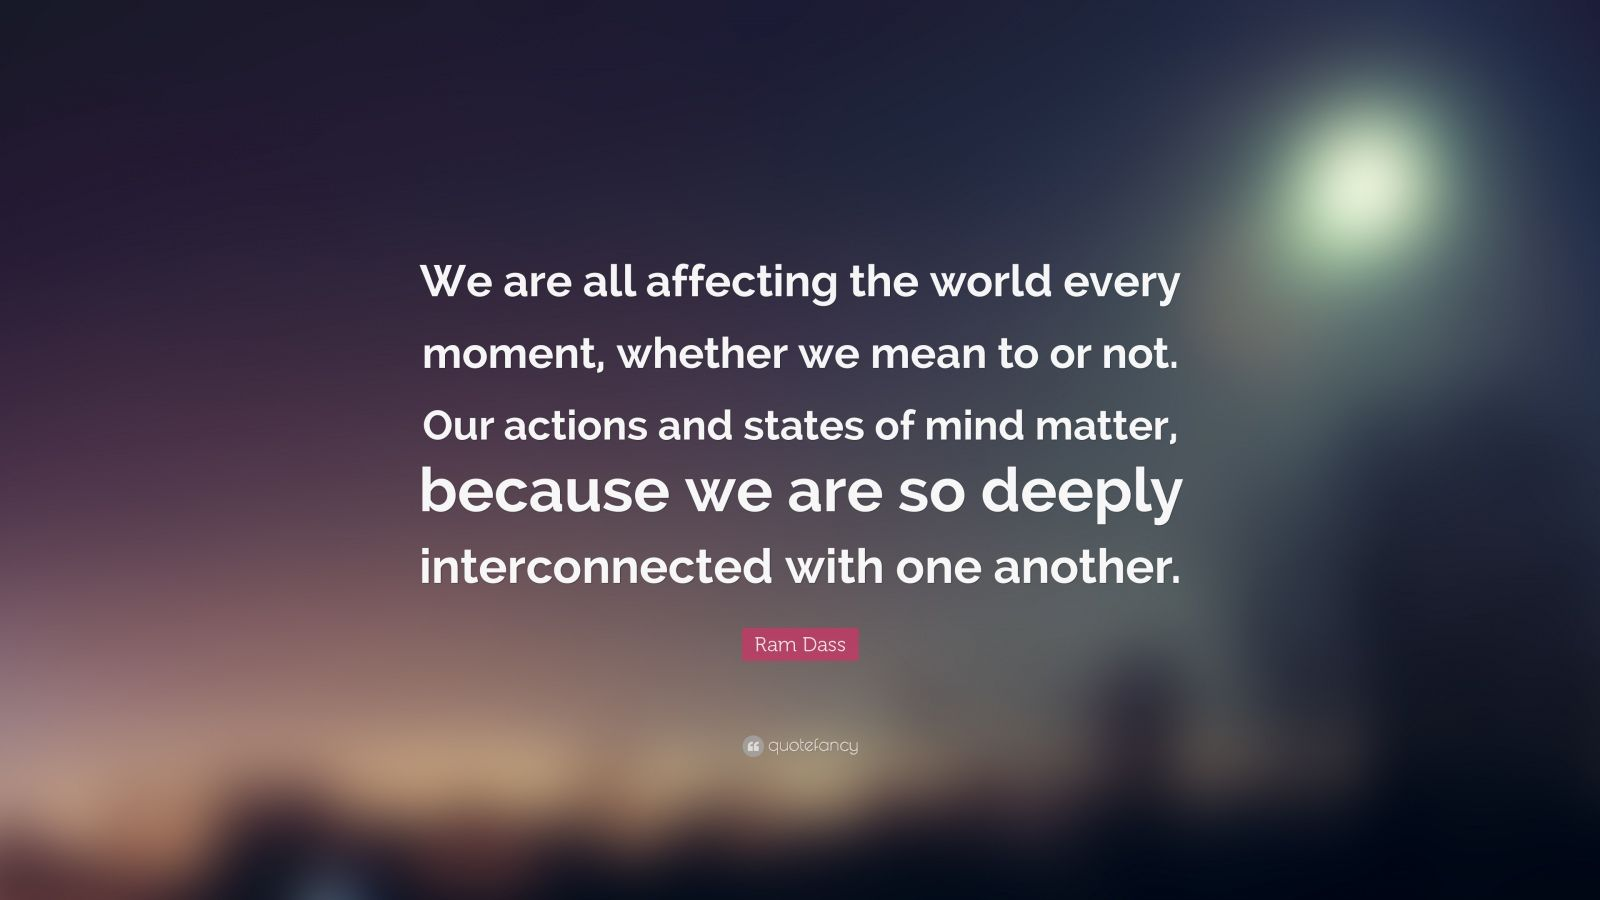 Motivational Life Quotes Wallpapers Ram Dass Quote We Are All Affecting The World Every